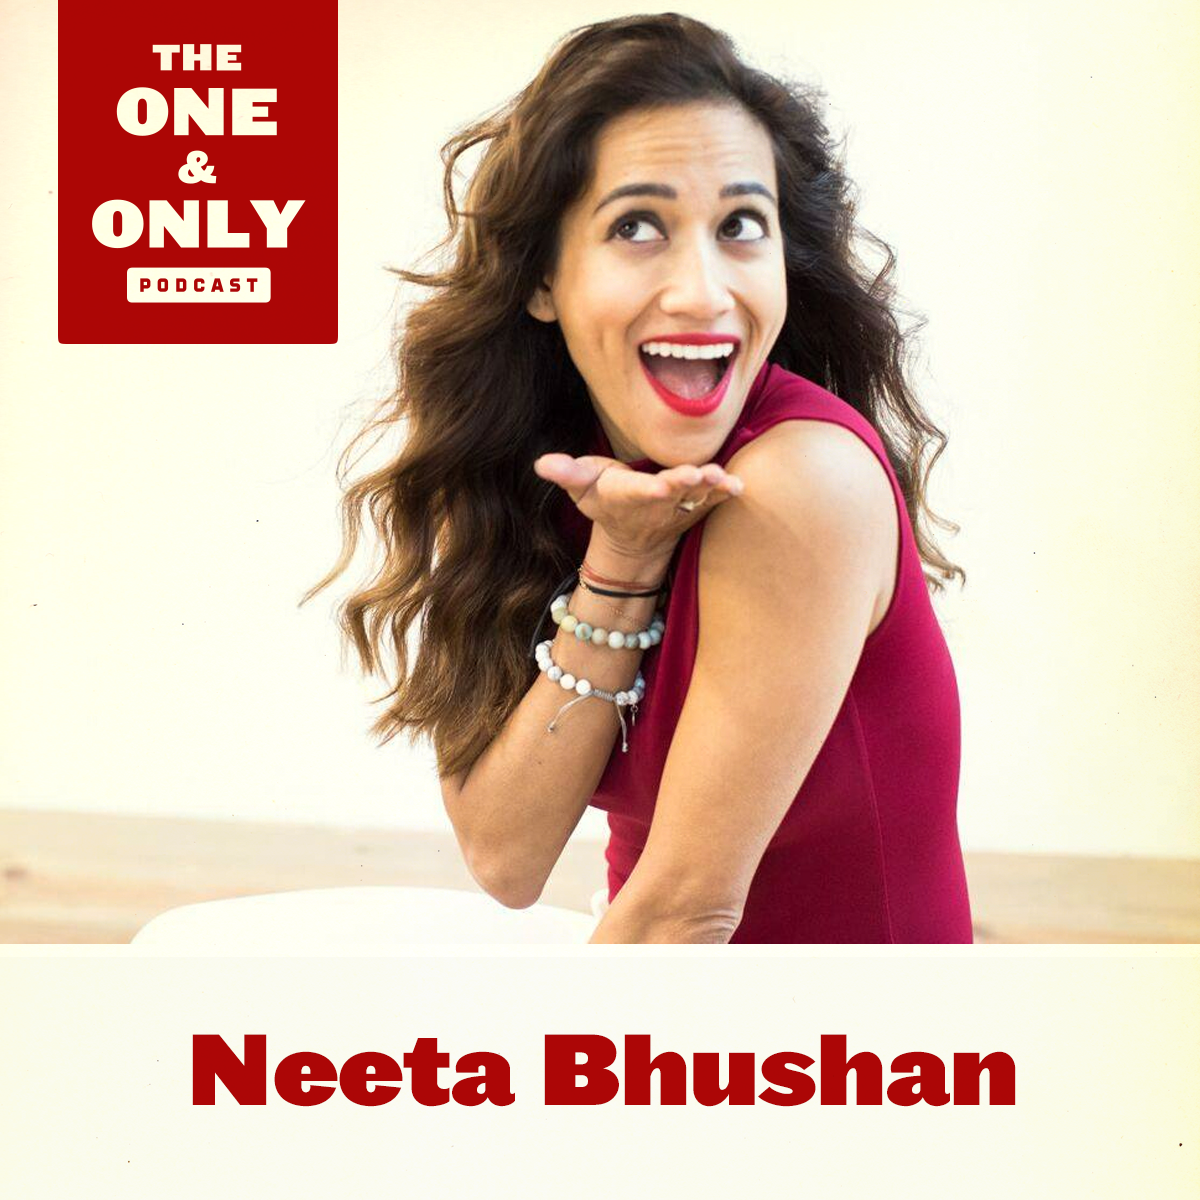 Neeta Bhushan on The One & Only with Mark Shapiro